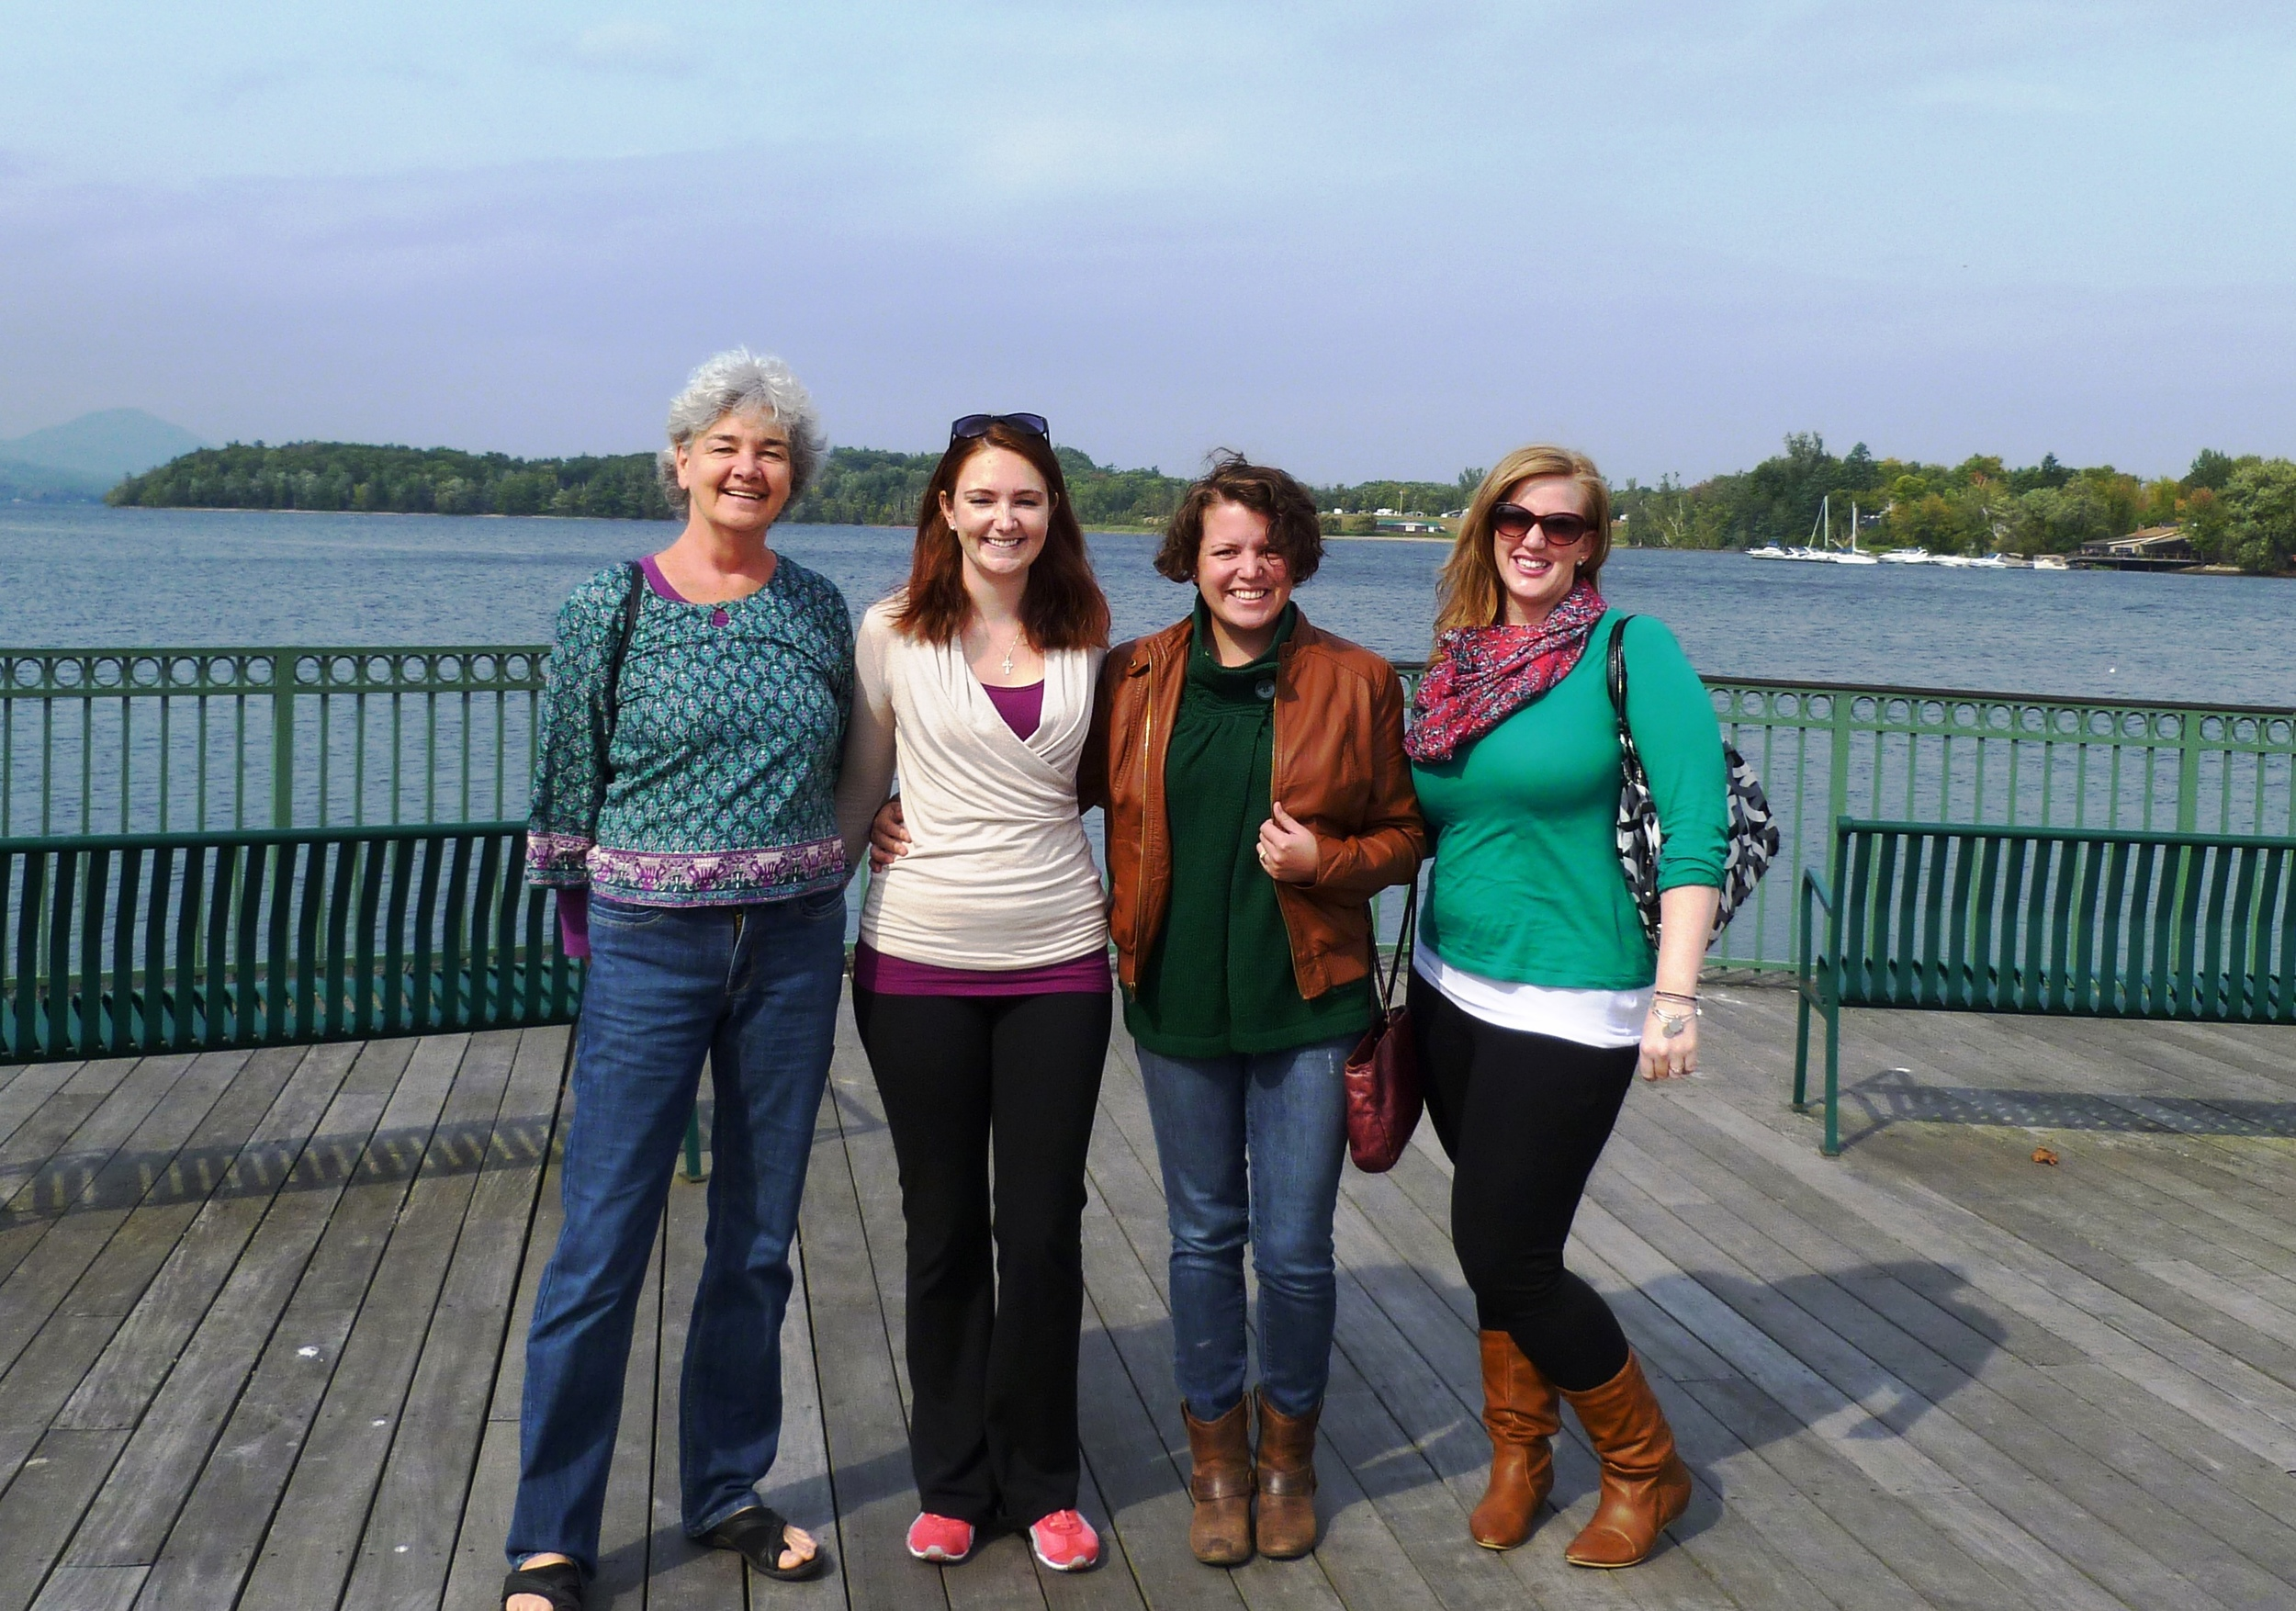 My mom, me, Linzy and Nicole - Newport, VT on September 20th